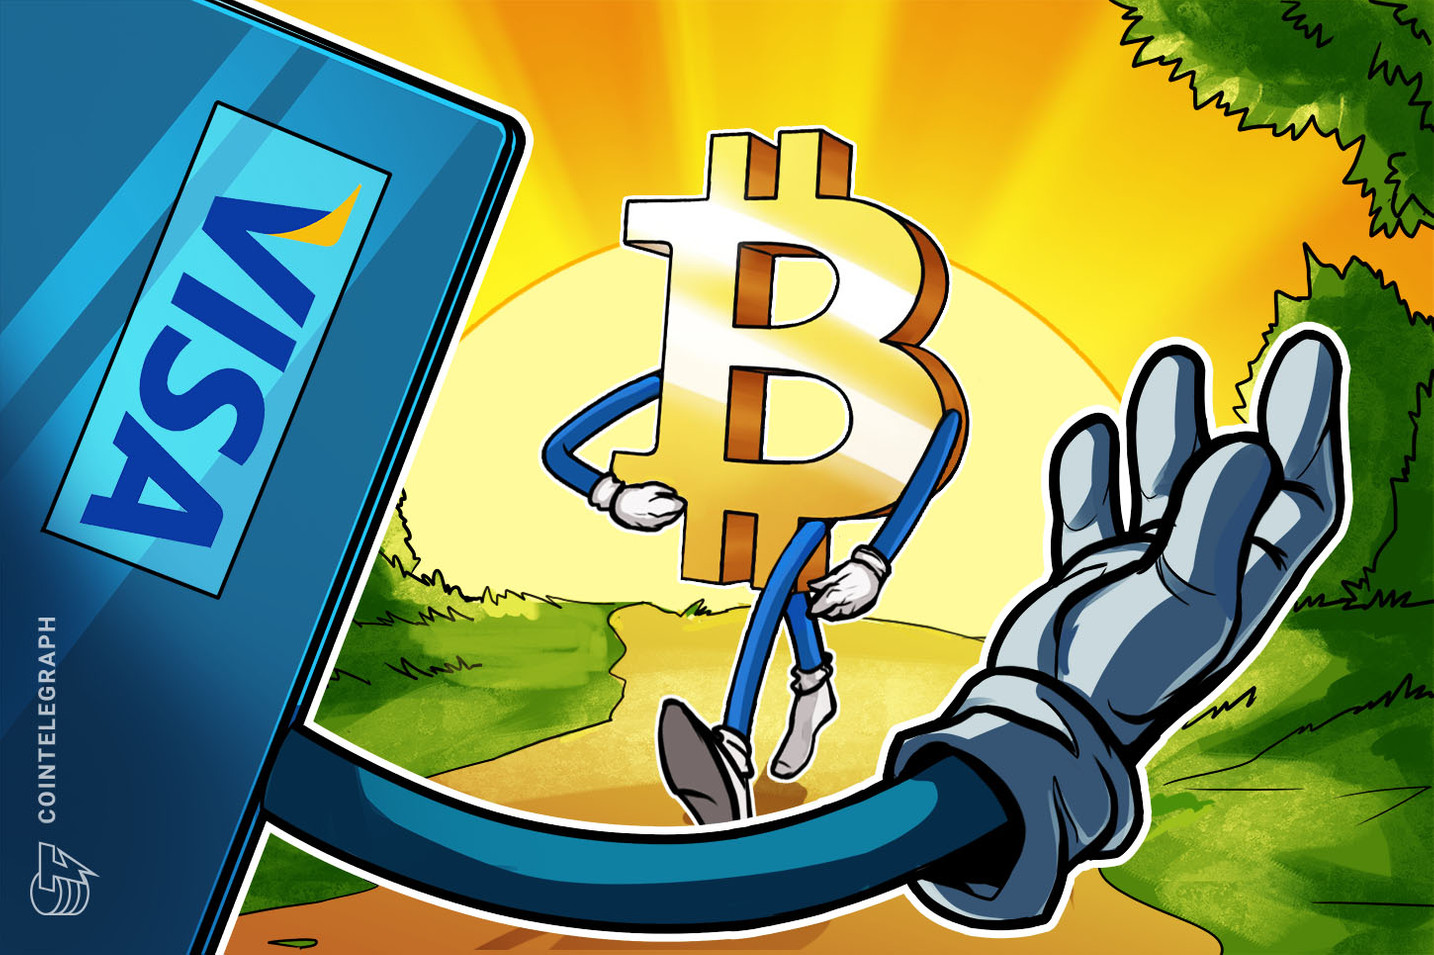 Bitcoin hits $25,000 all-time high milestone, surpassing Visa's market cap